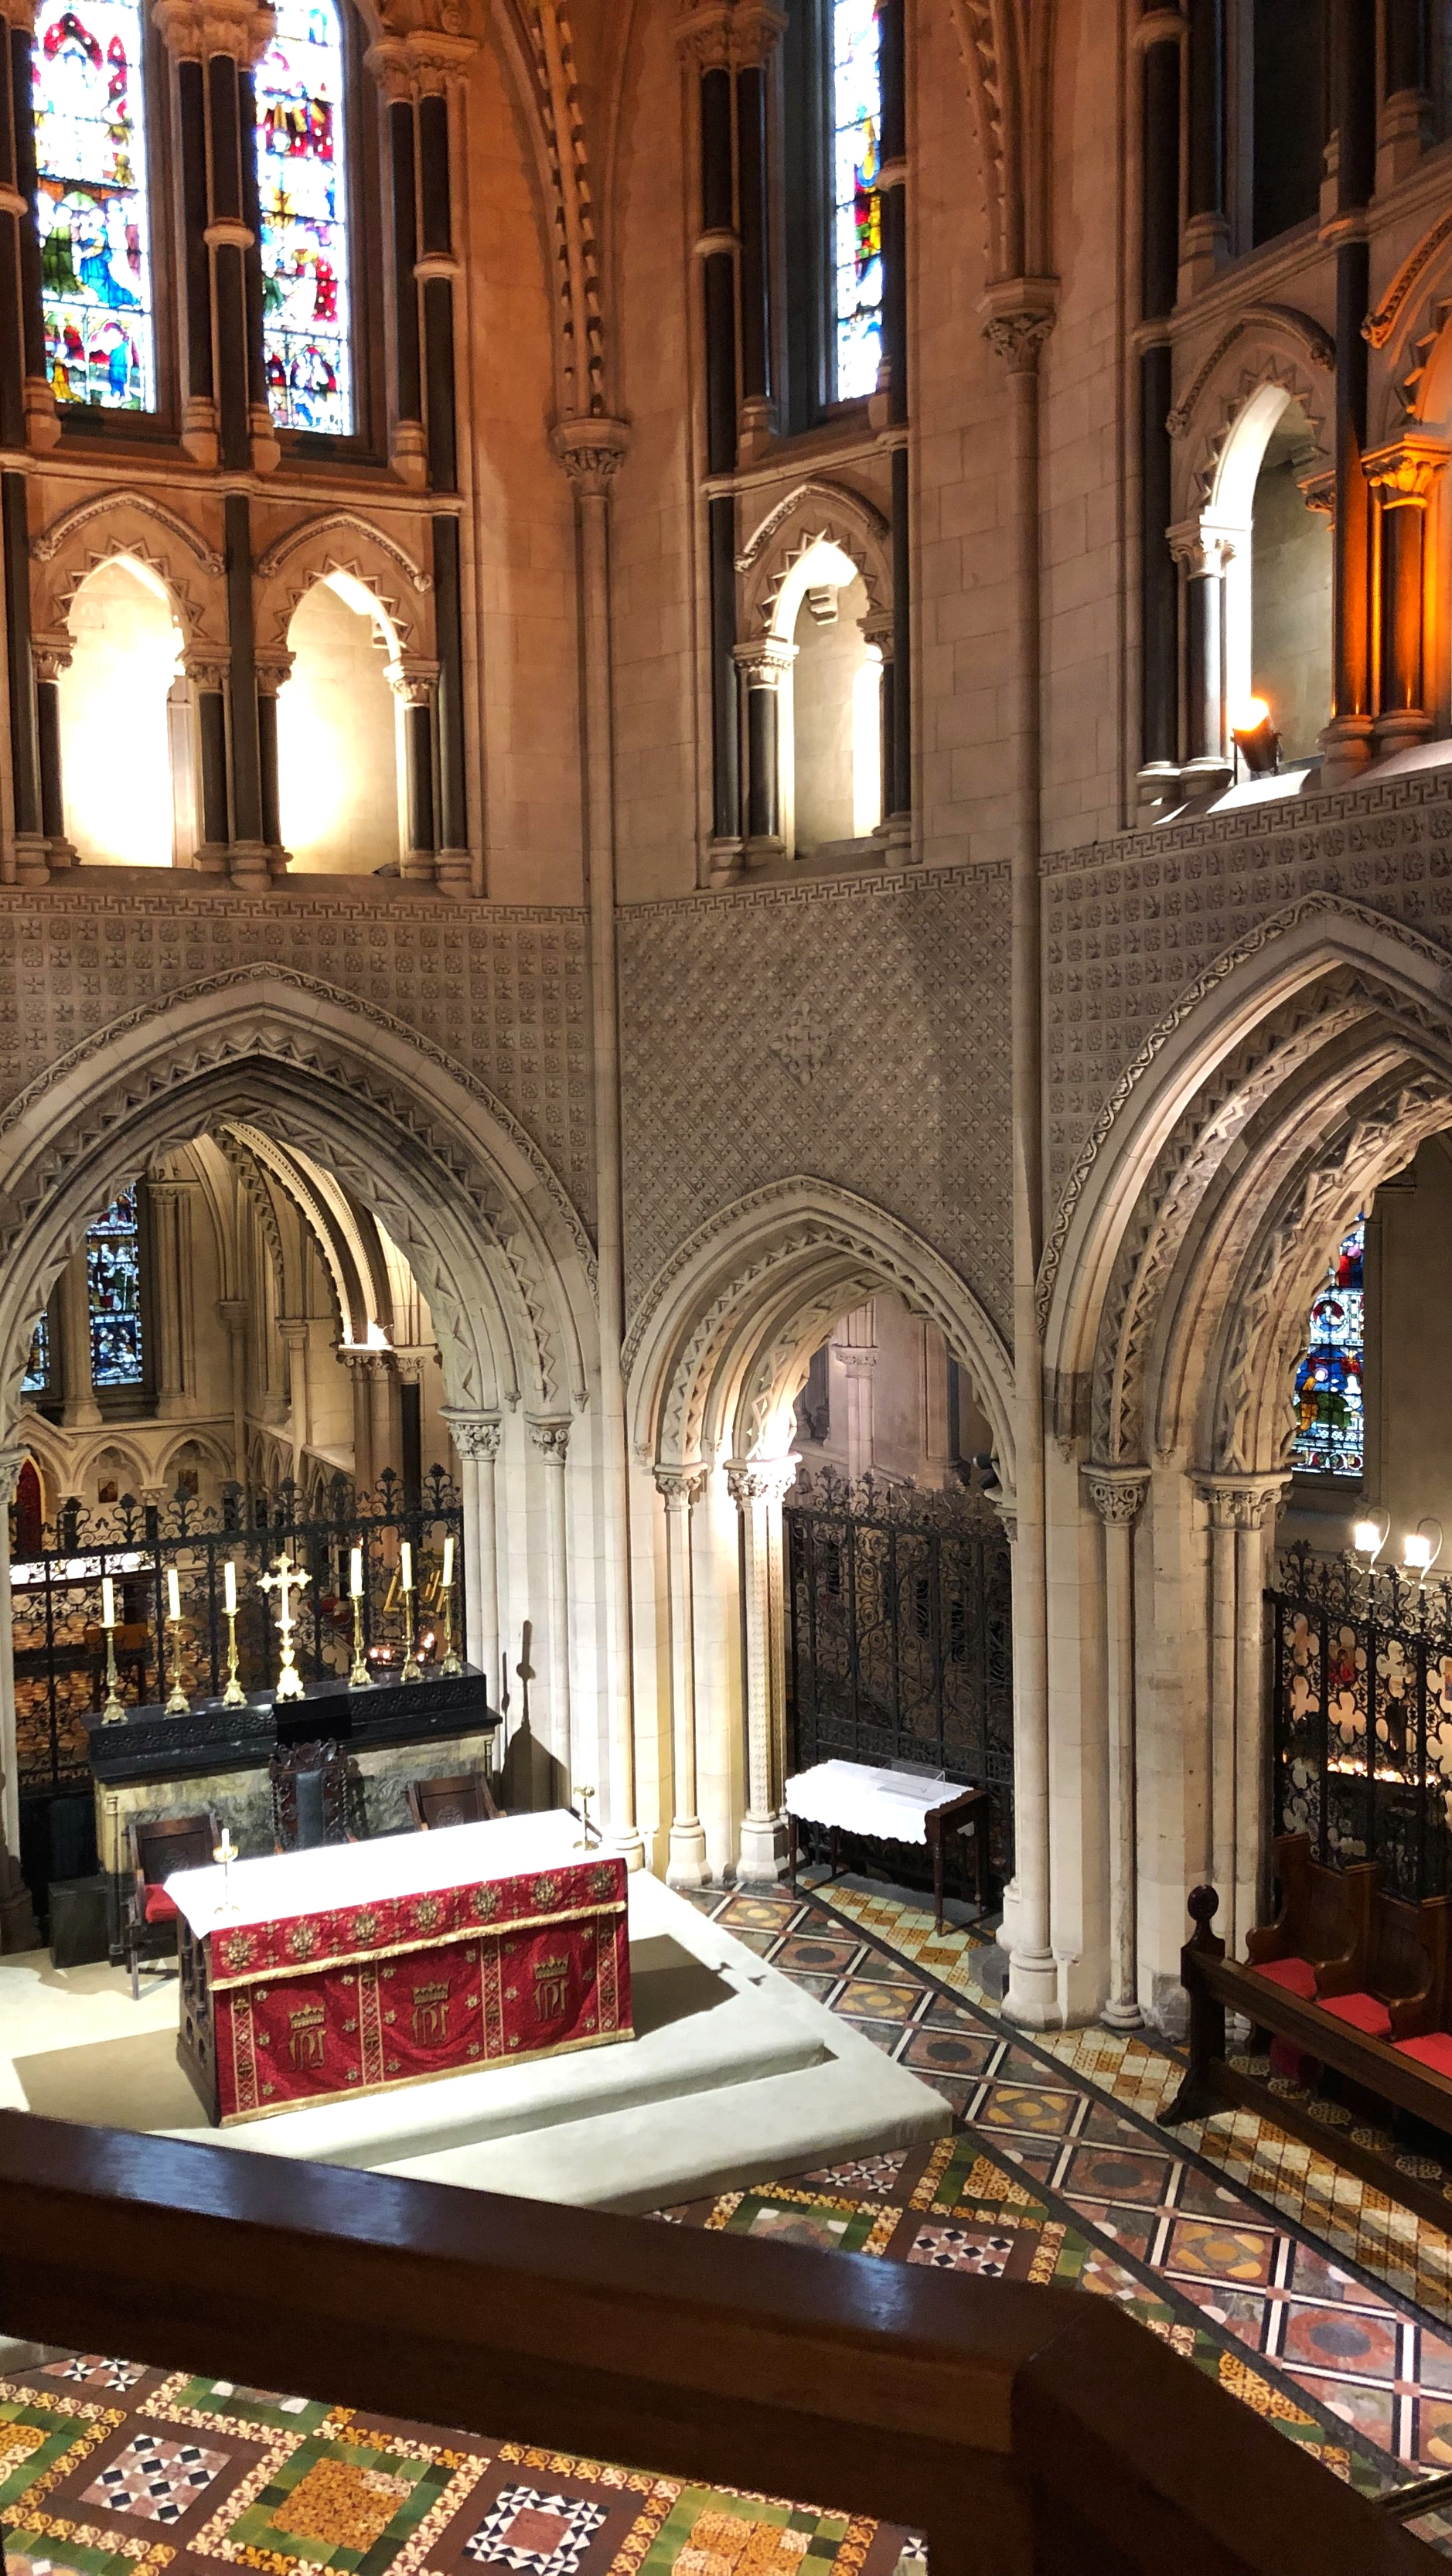 The High Altar at Christ Church Cathedral, Dublin